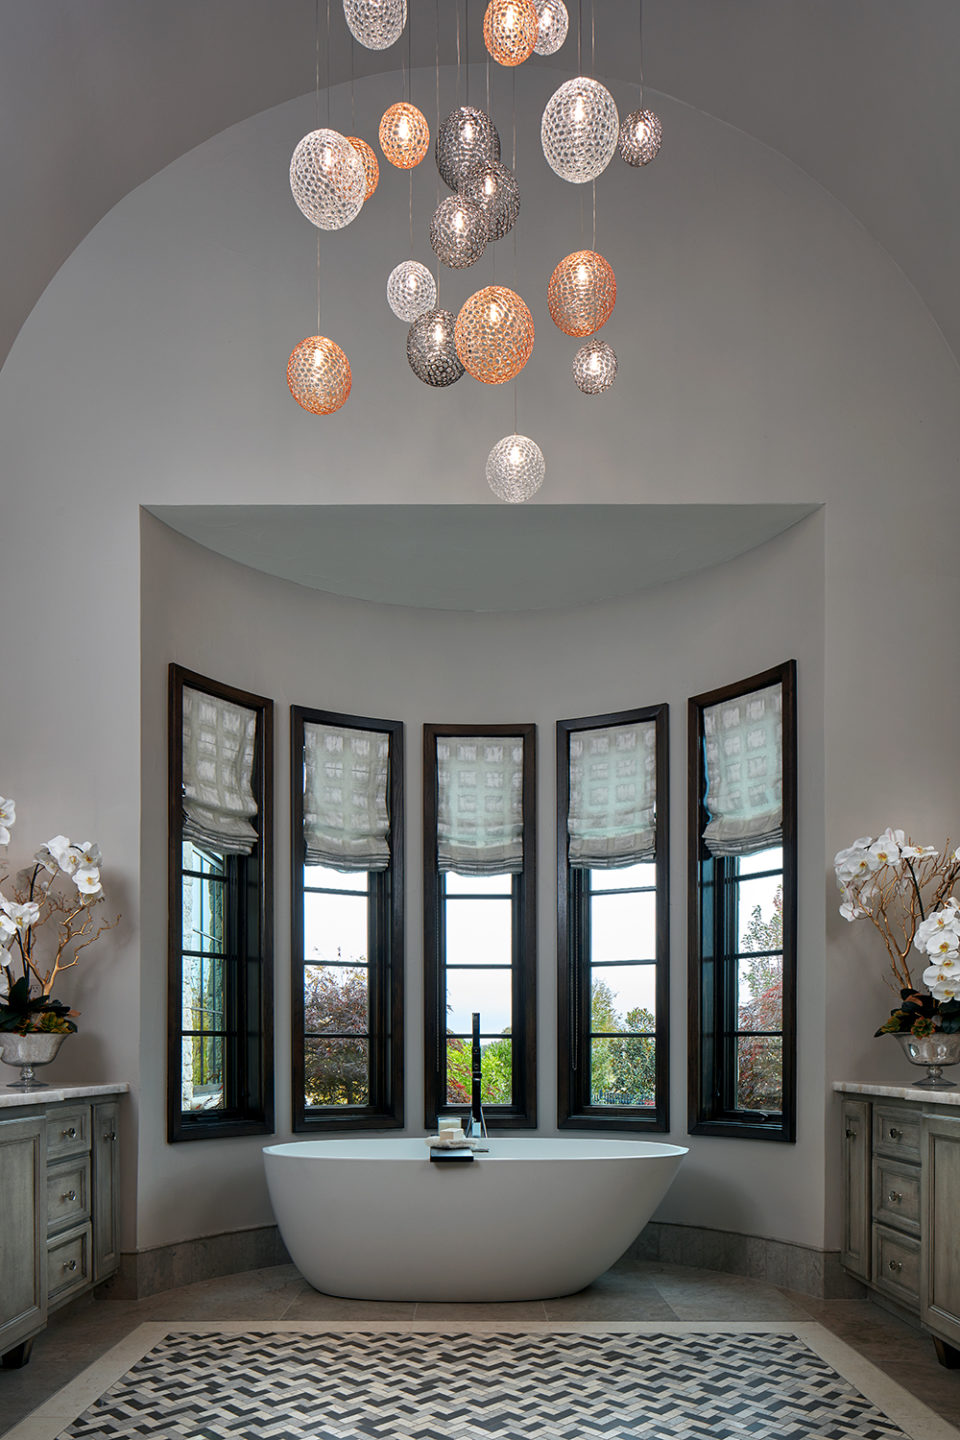 Master Bath With Freestanding Tub and Glass Cluster Chandelier